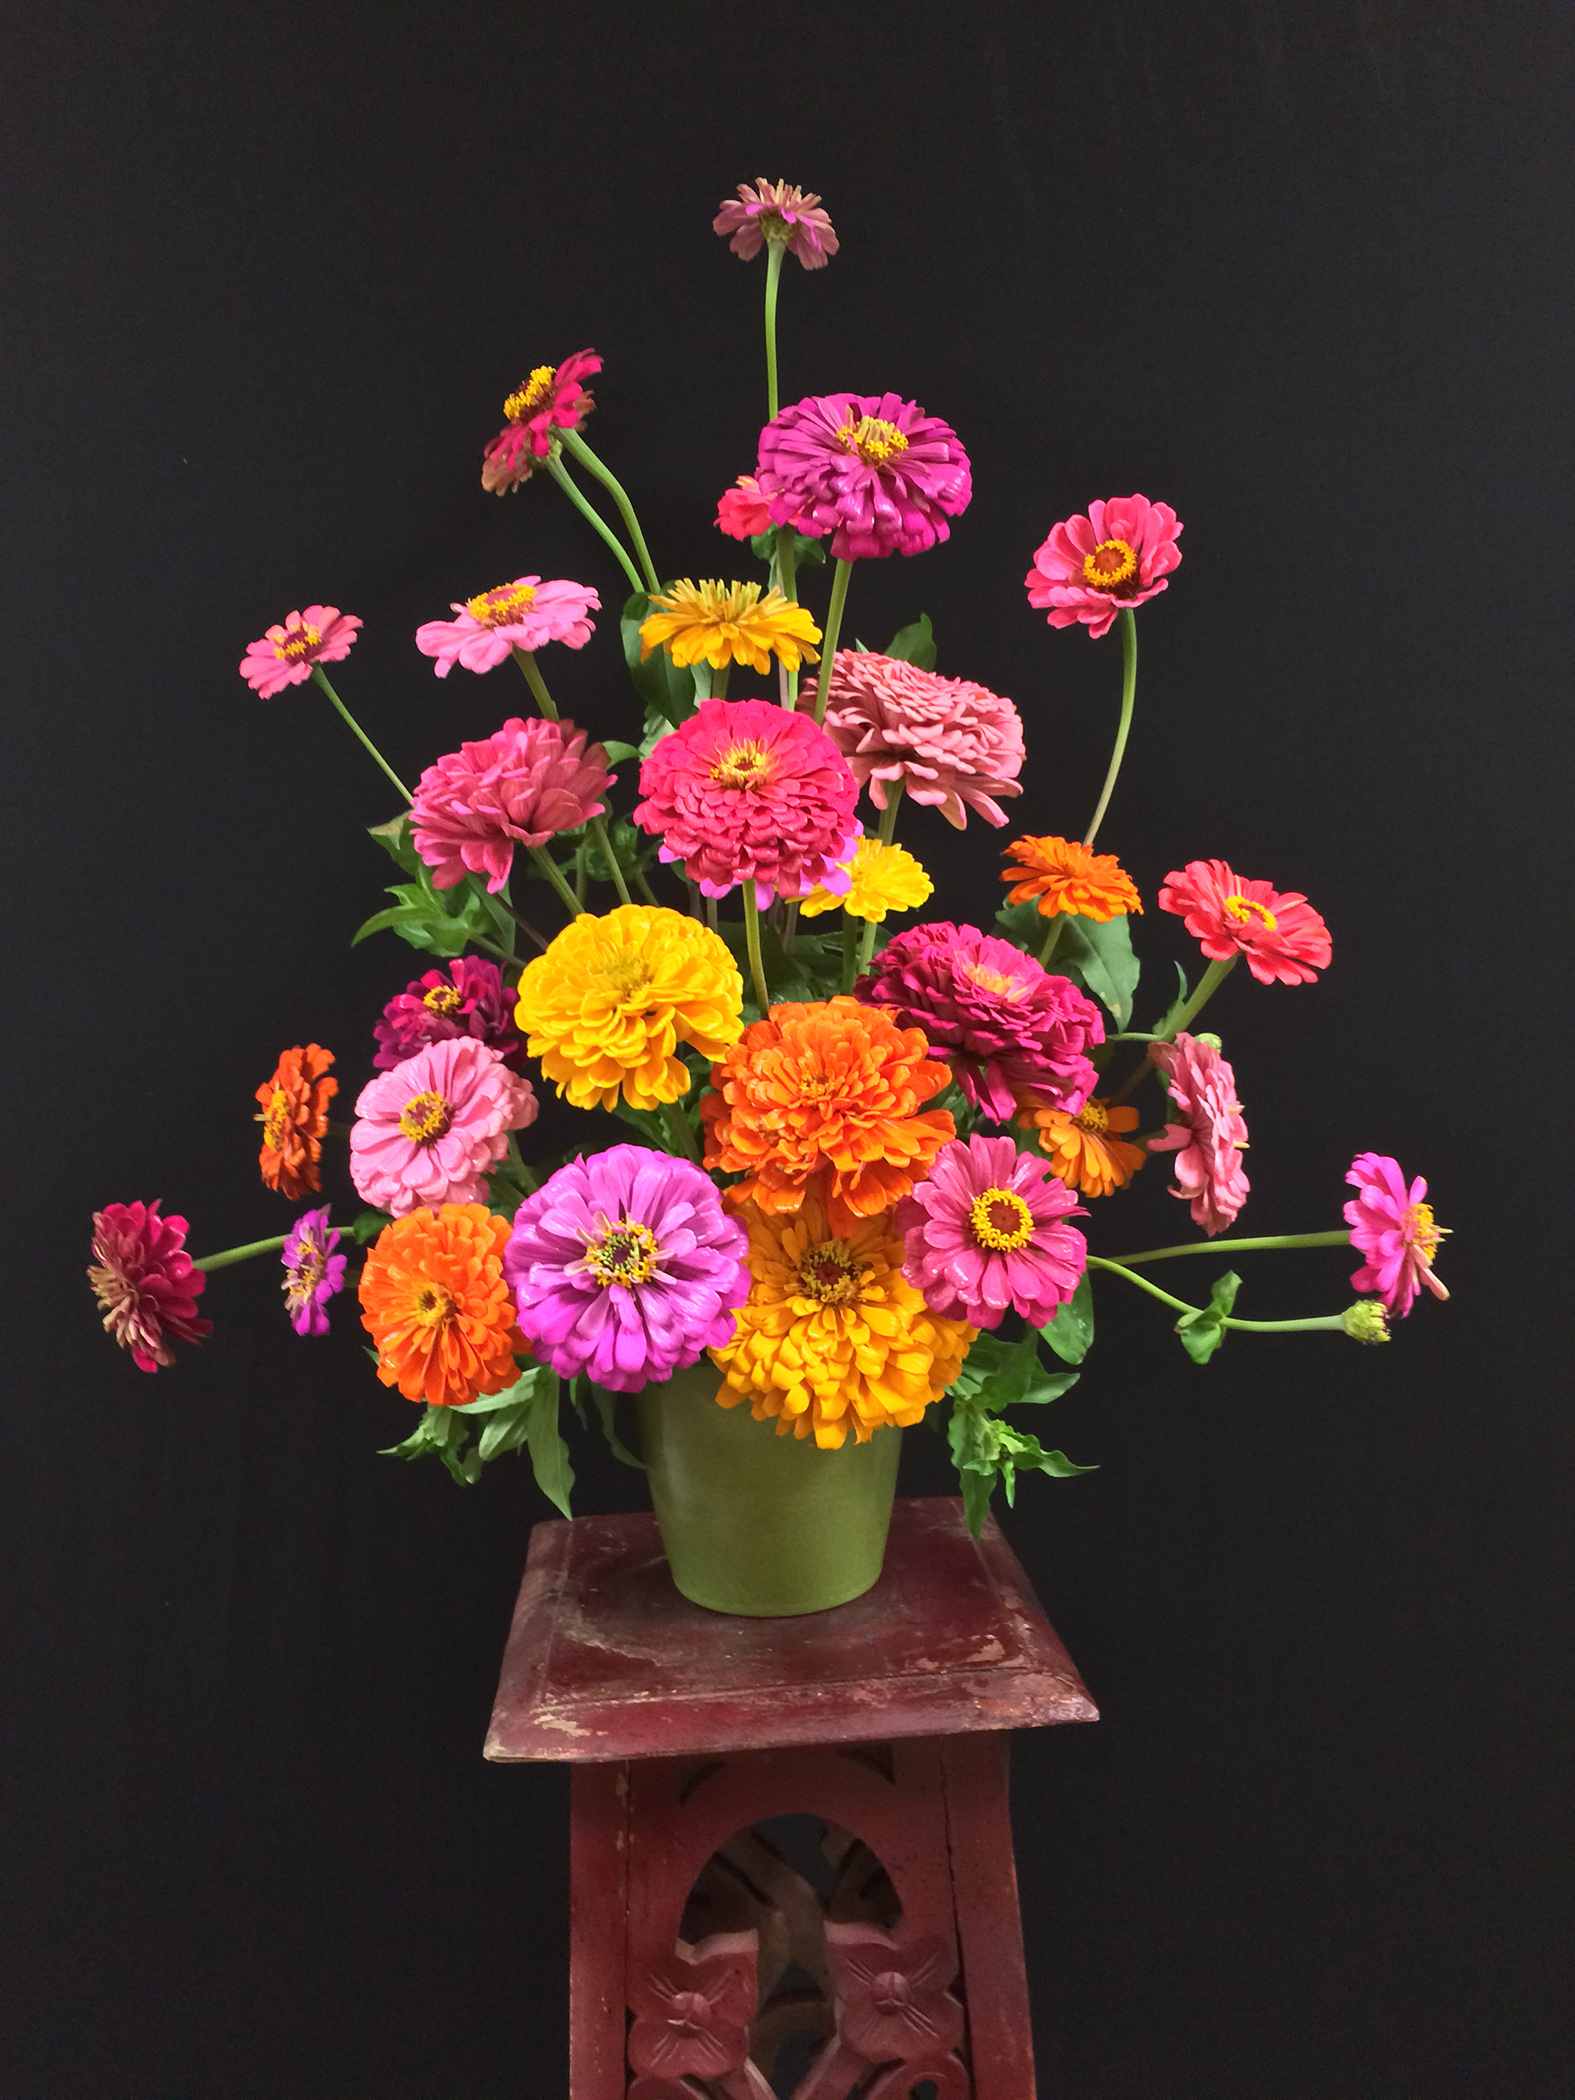 Live Floral Design Show Uses Local Materials Pottery